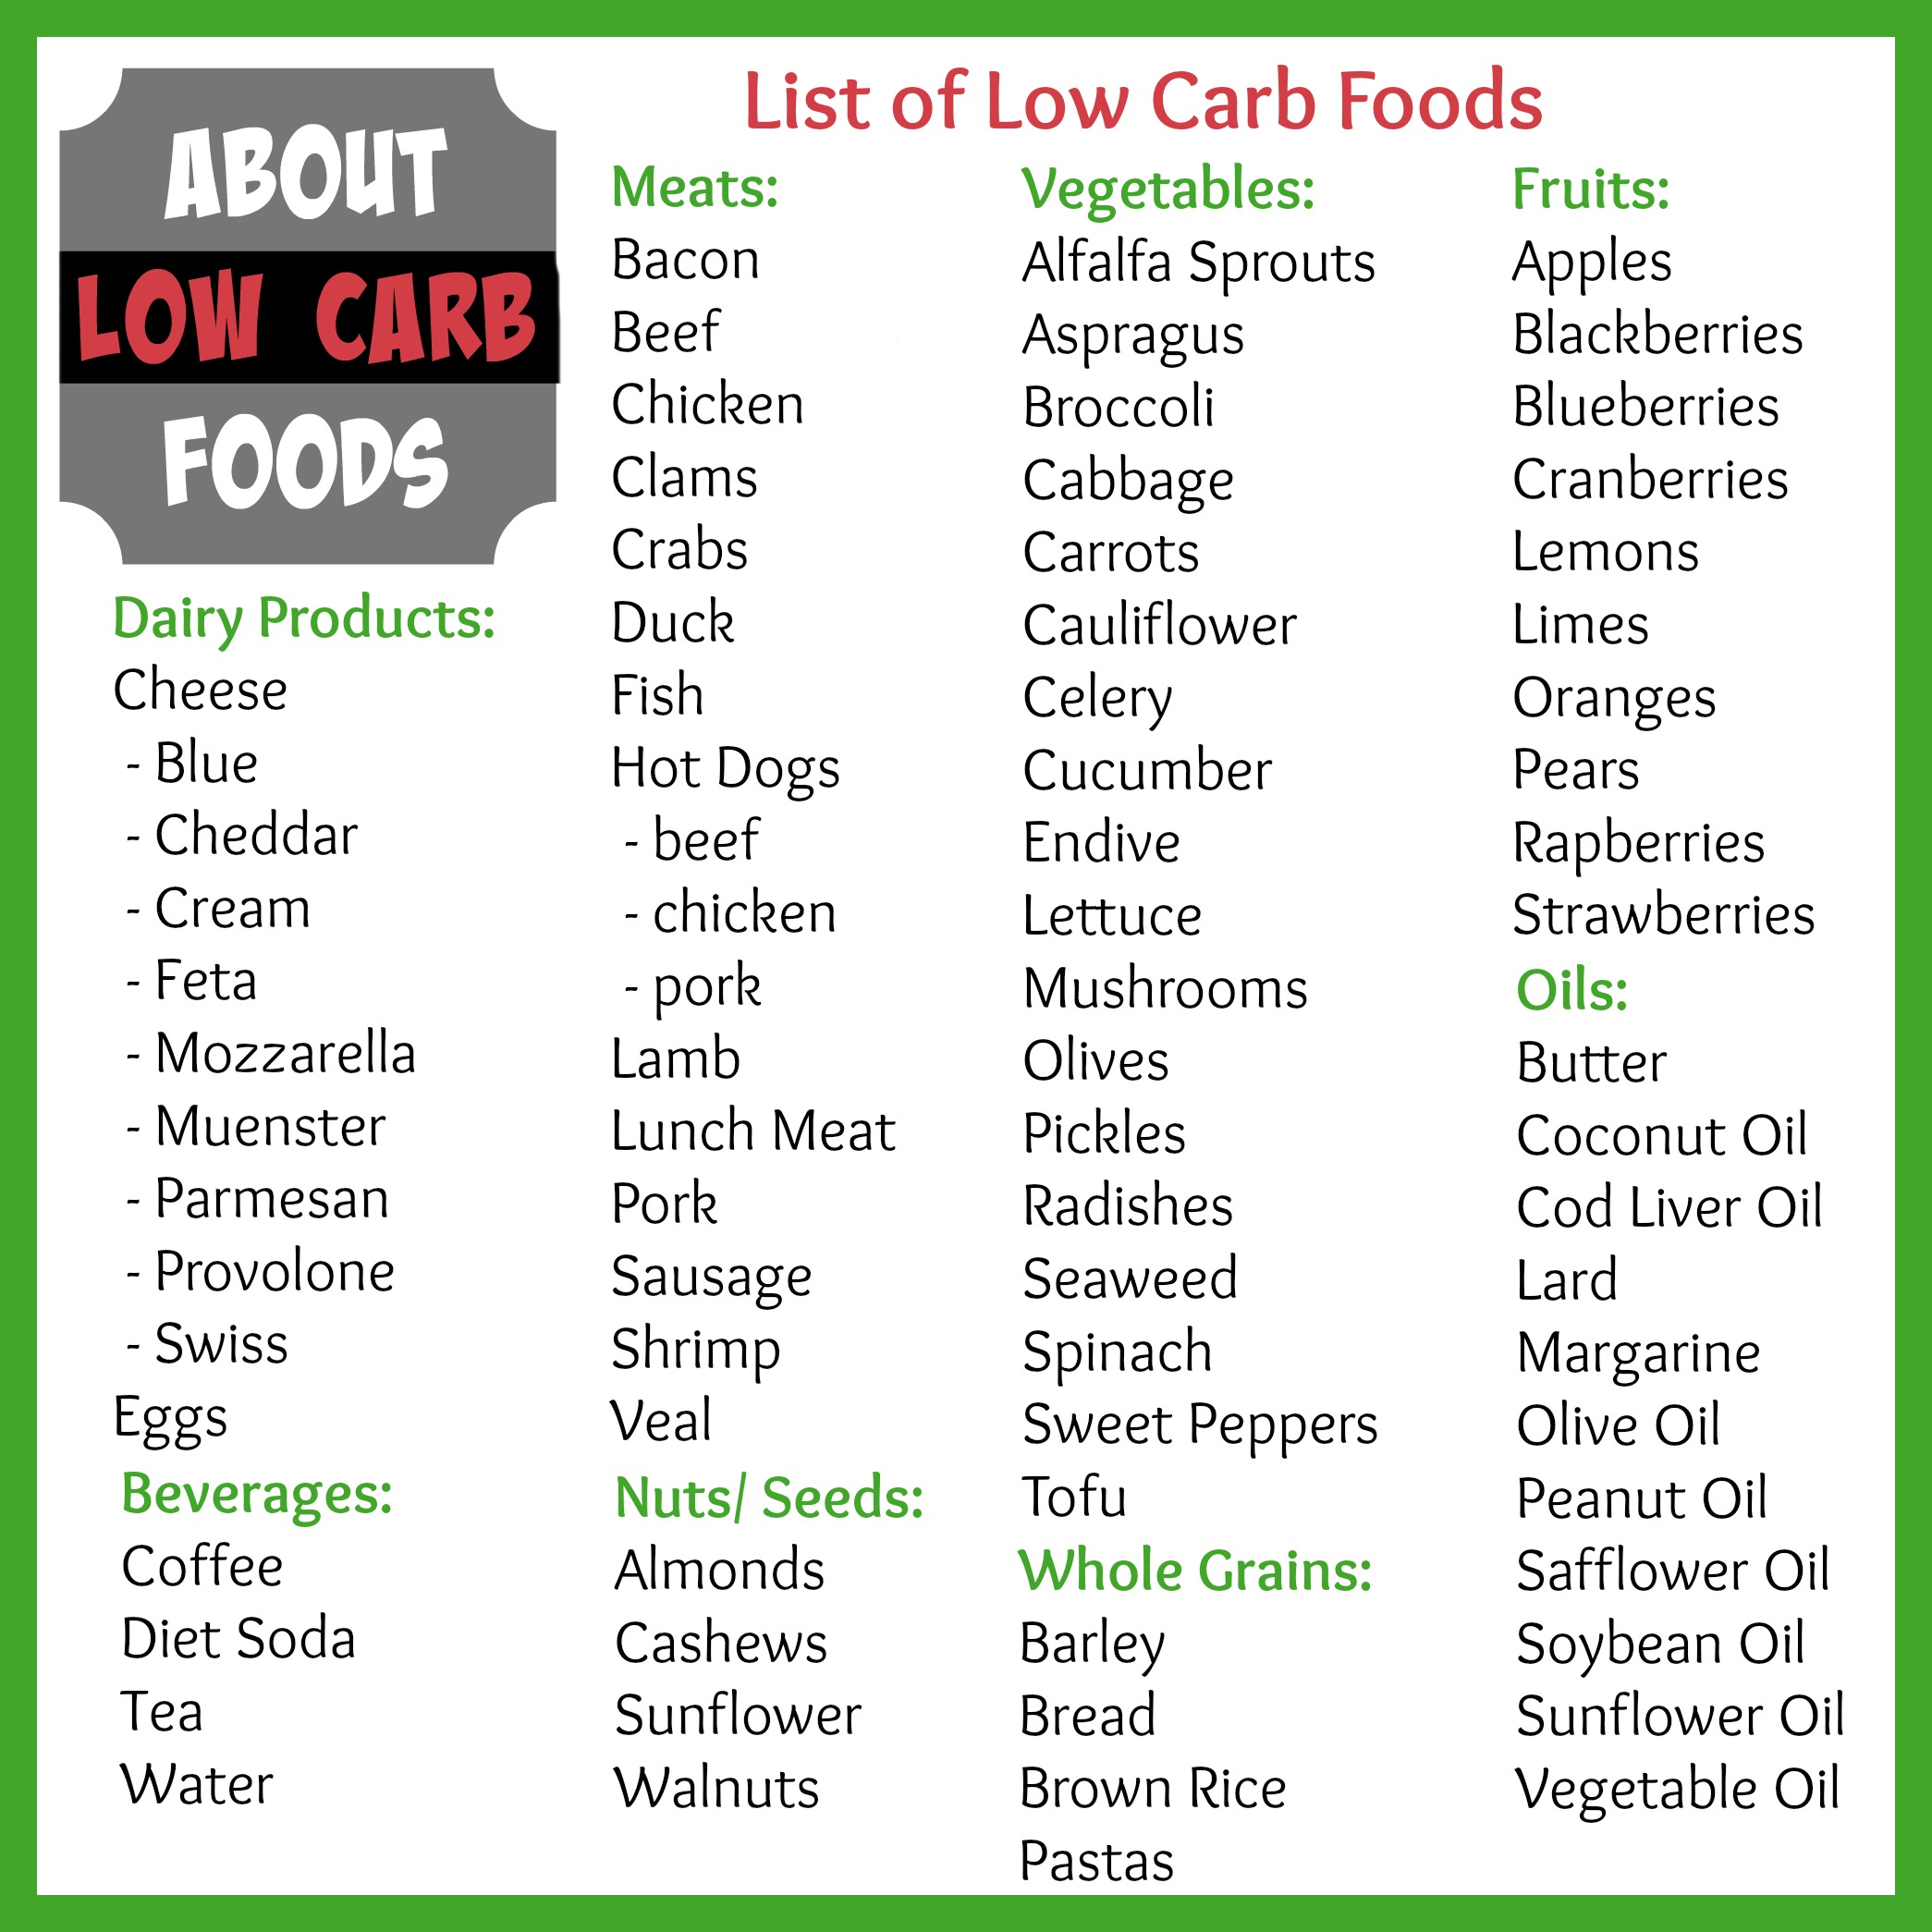 List of Low Carb Foods - About Low Carb Foods